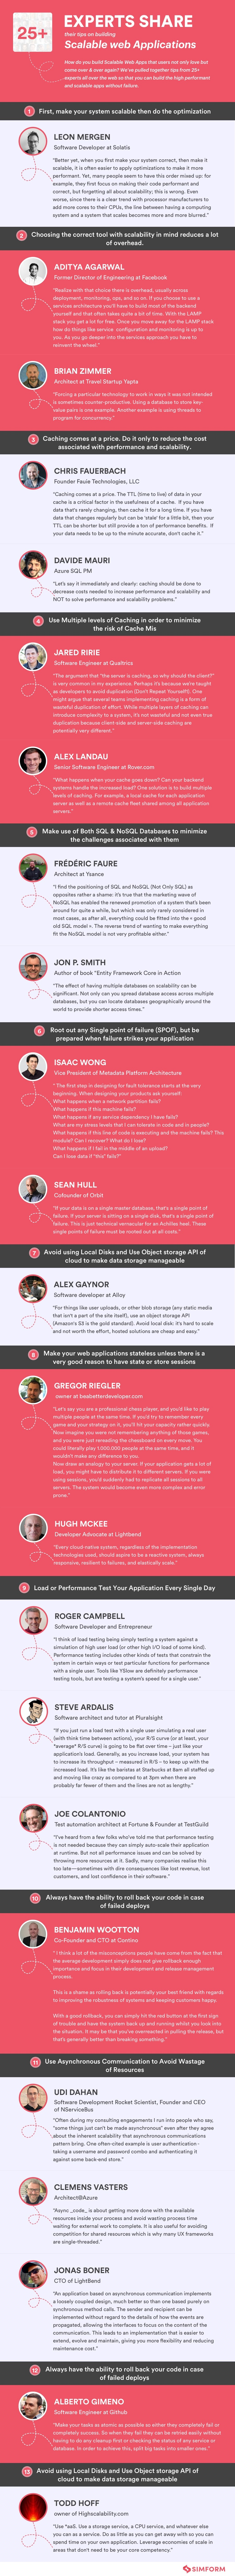 Web Scalability Tips from Experts Infographic-min